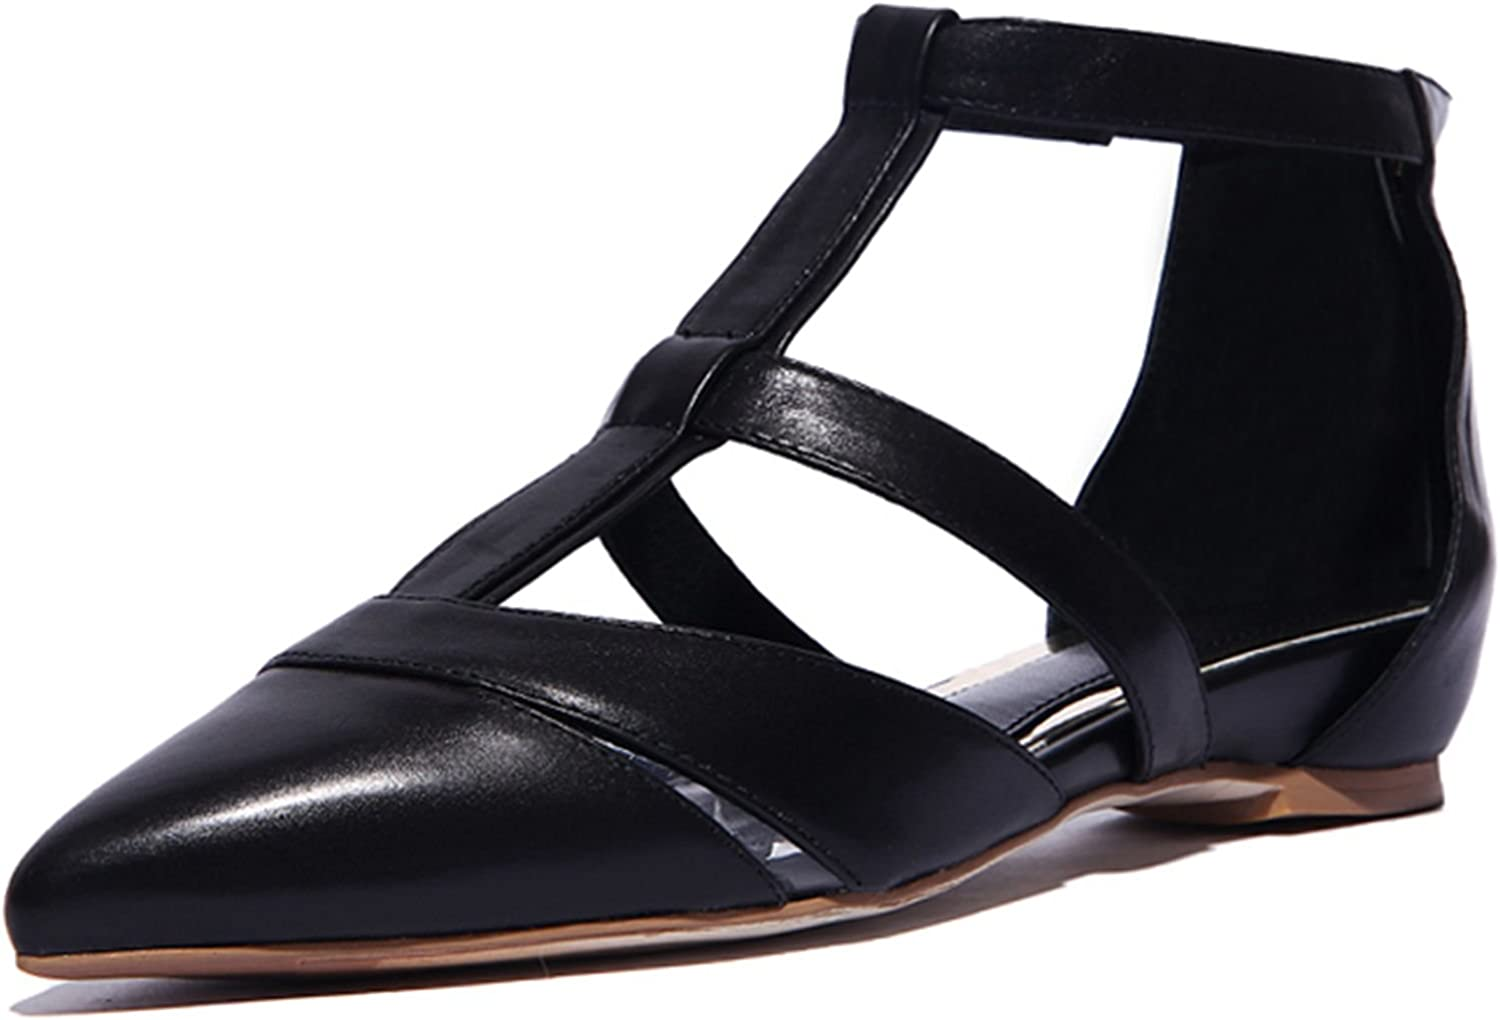 VIMISAOI Women's Comfort Cut-Out Genuine Leather Pointed Toe Flat Sandals